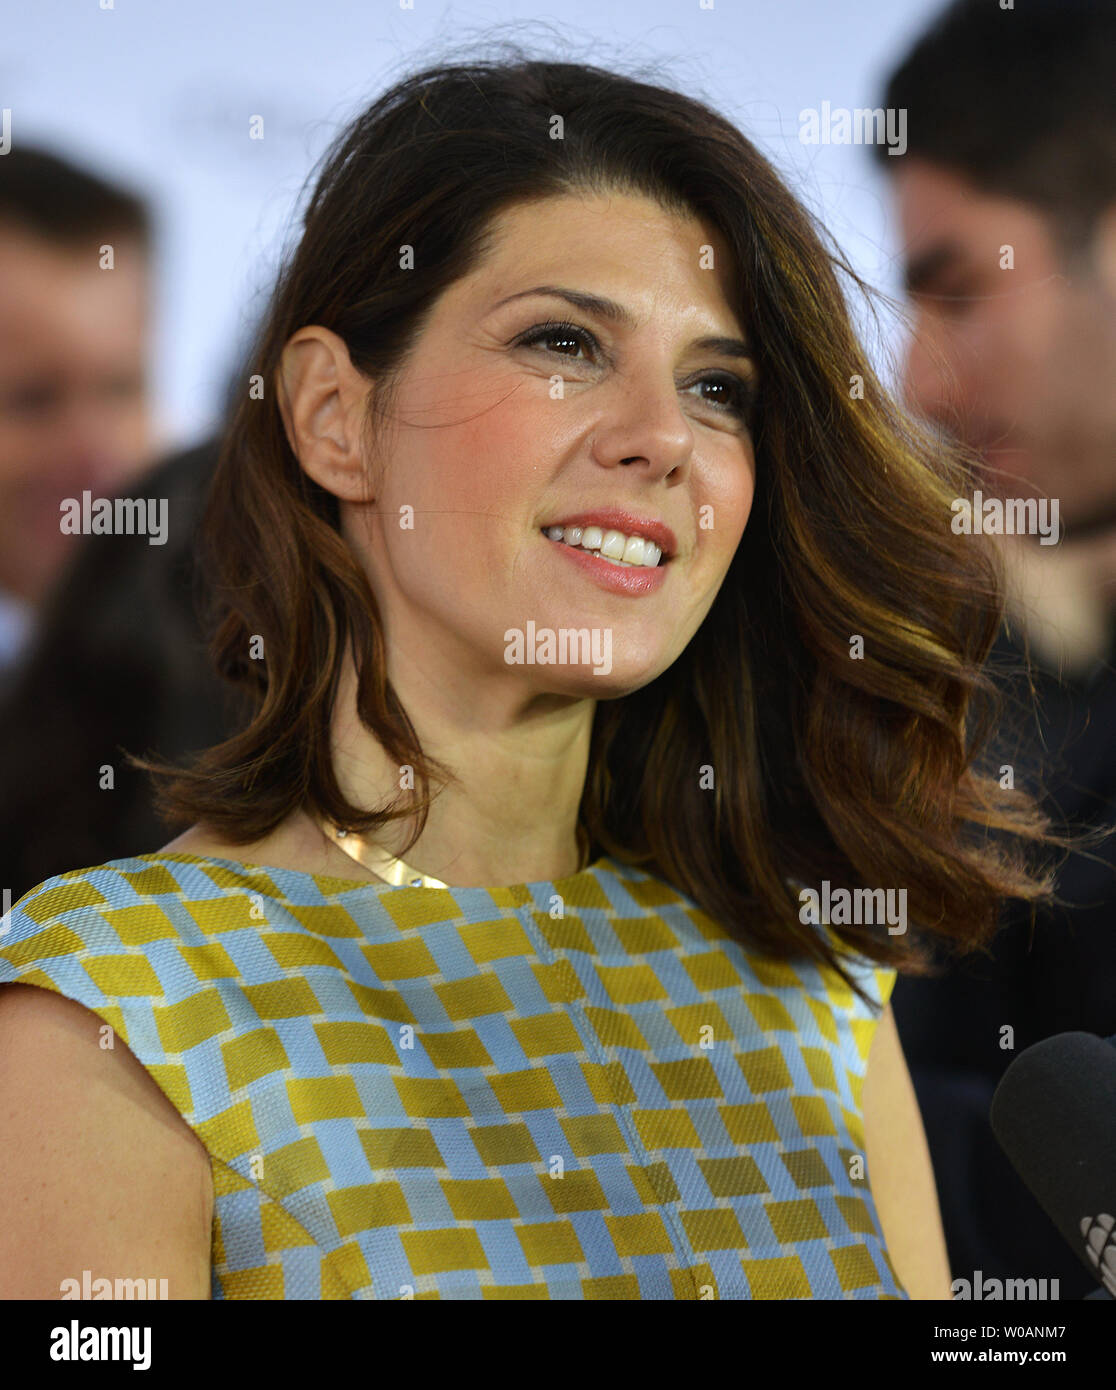 Marisa Tomei arrives for the world premiere gala screening of 'Inescapable' at Roy Thomson Hall during the Toronto International Film Festival in Toronto, Canada on September 11, 2012.  UPI/Christine Chew - Stock Image